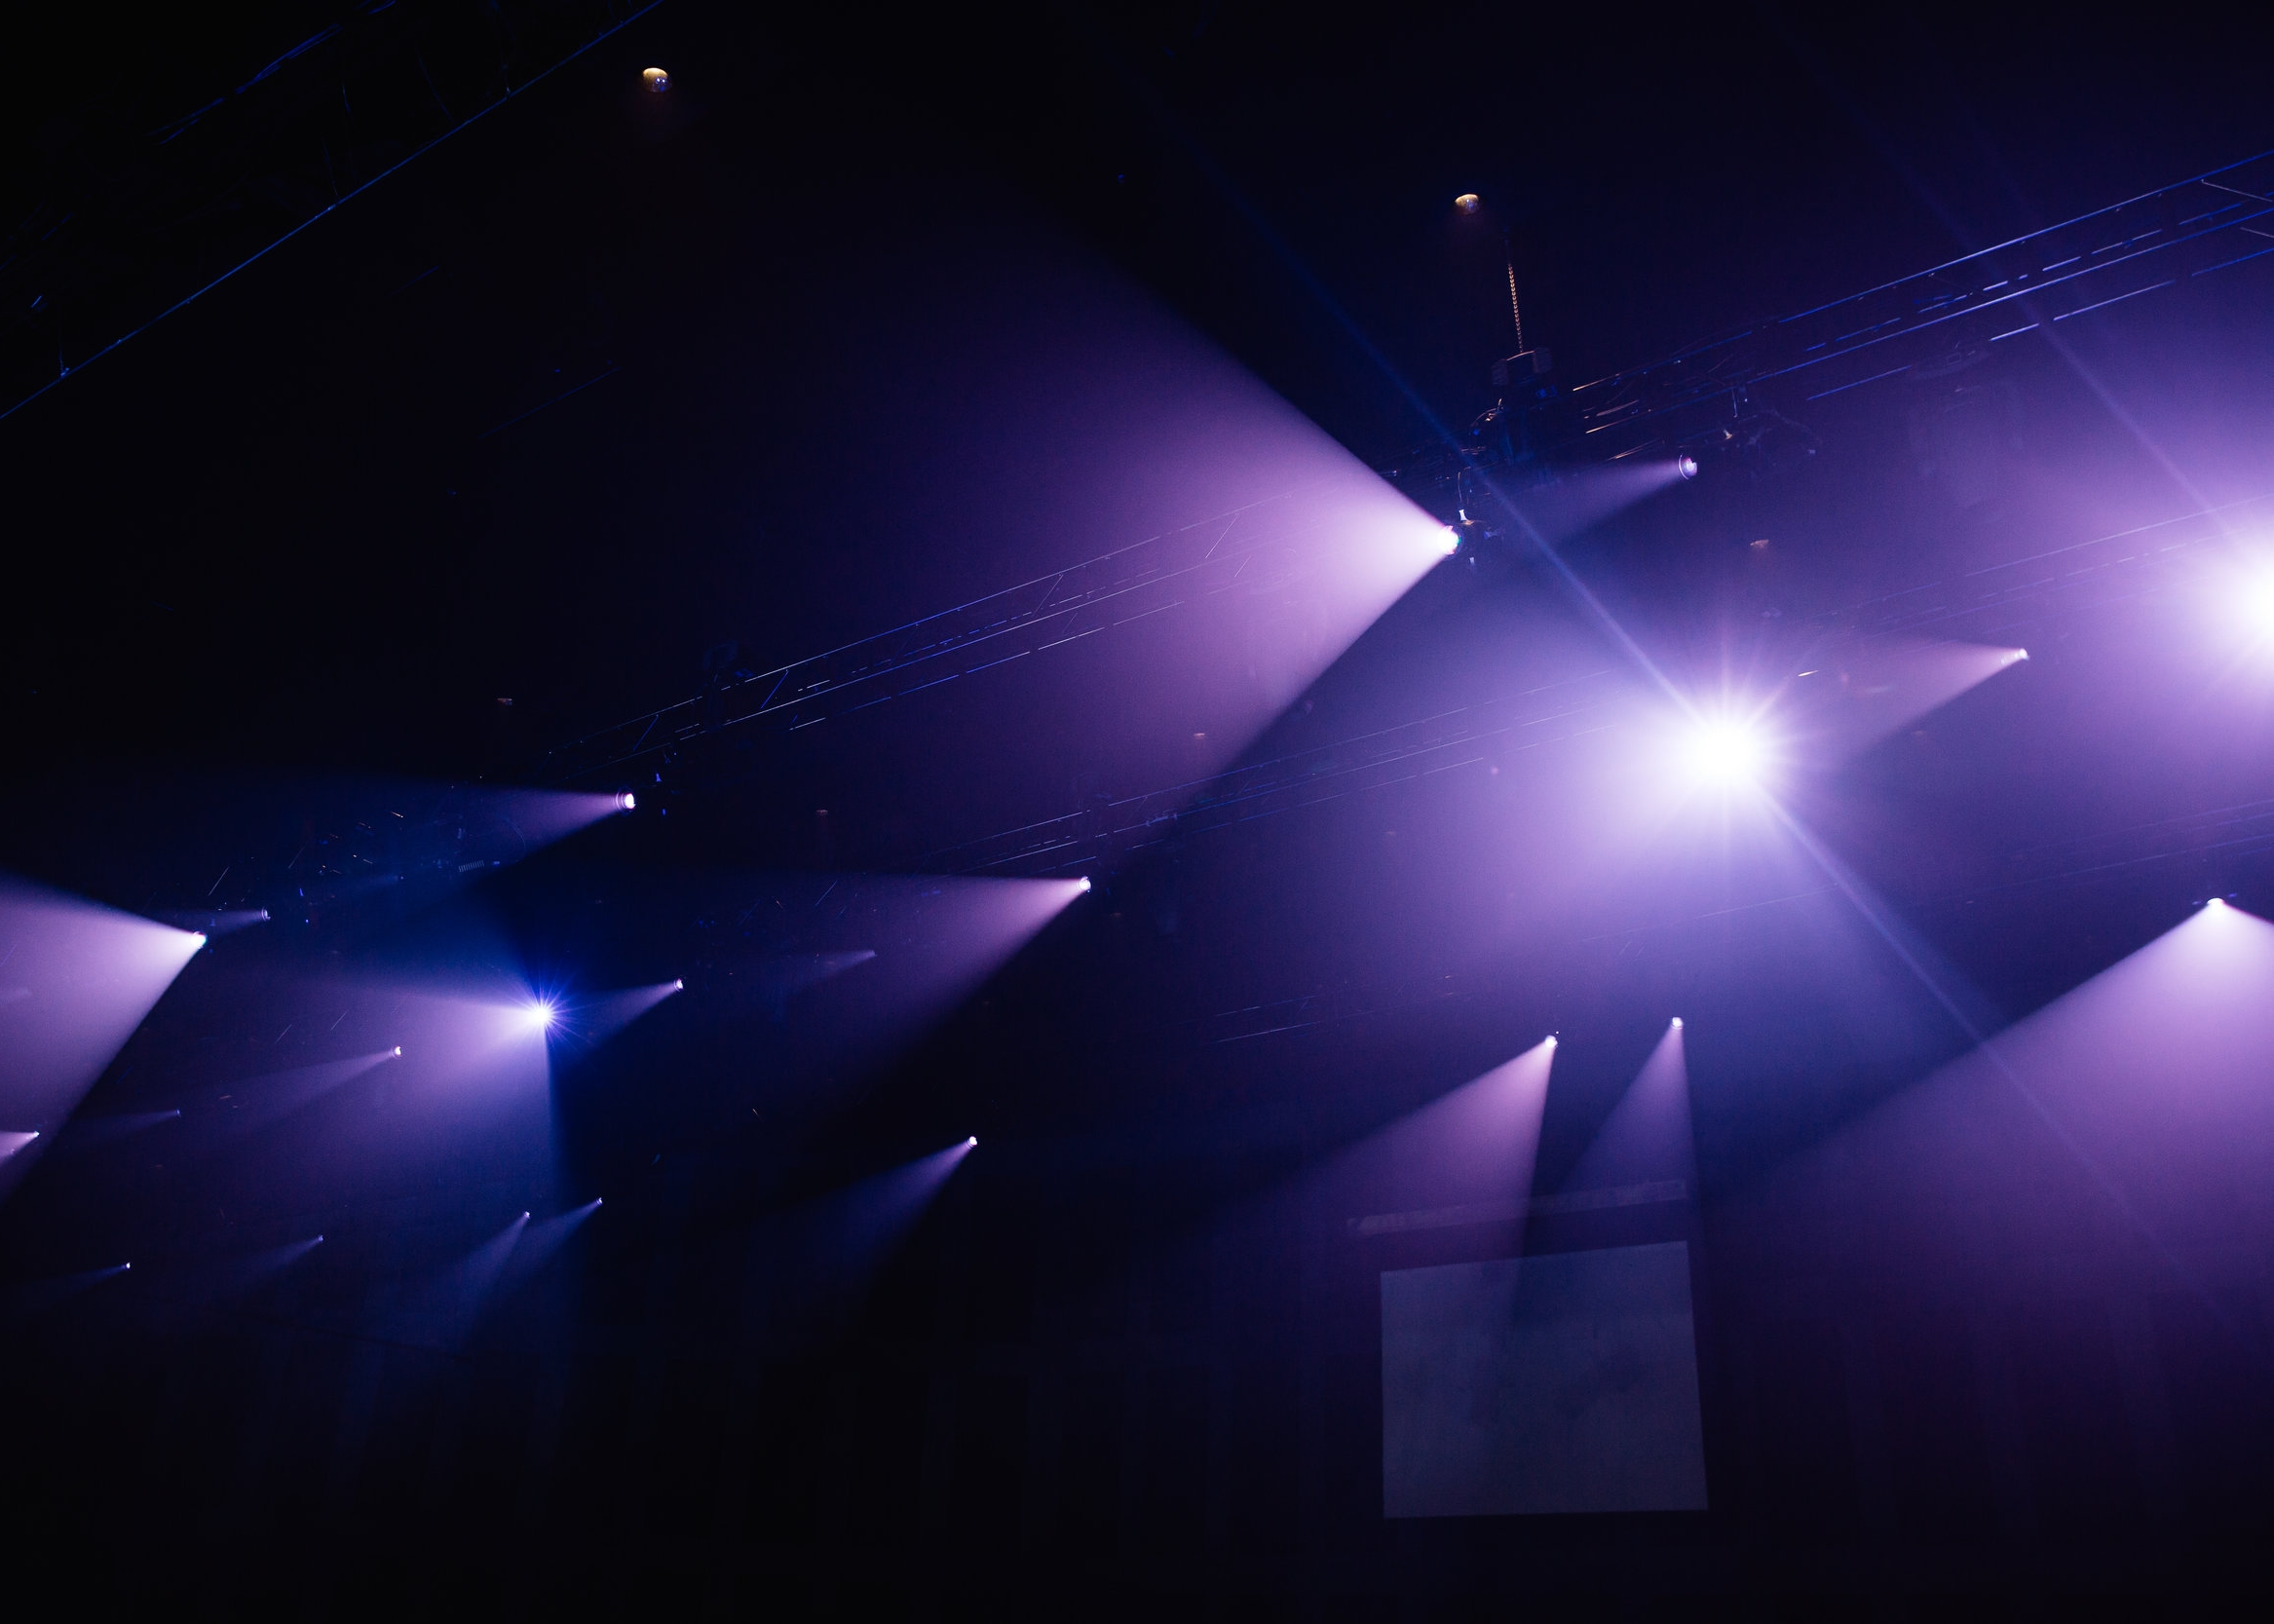 Lighting - Each room is different, and each application is different, however the process is the same. When providing key lighting (front wash lighting), it is very important to get complete coverage of each position on stage. This typically requires a three point focus at each position (L,C,R). It also may require multiple layers of lighting to have a uniform wash from upstage to downstage. This ensures that every lighting fixture quoted has a specific purpose.